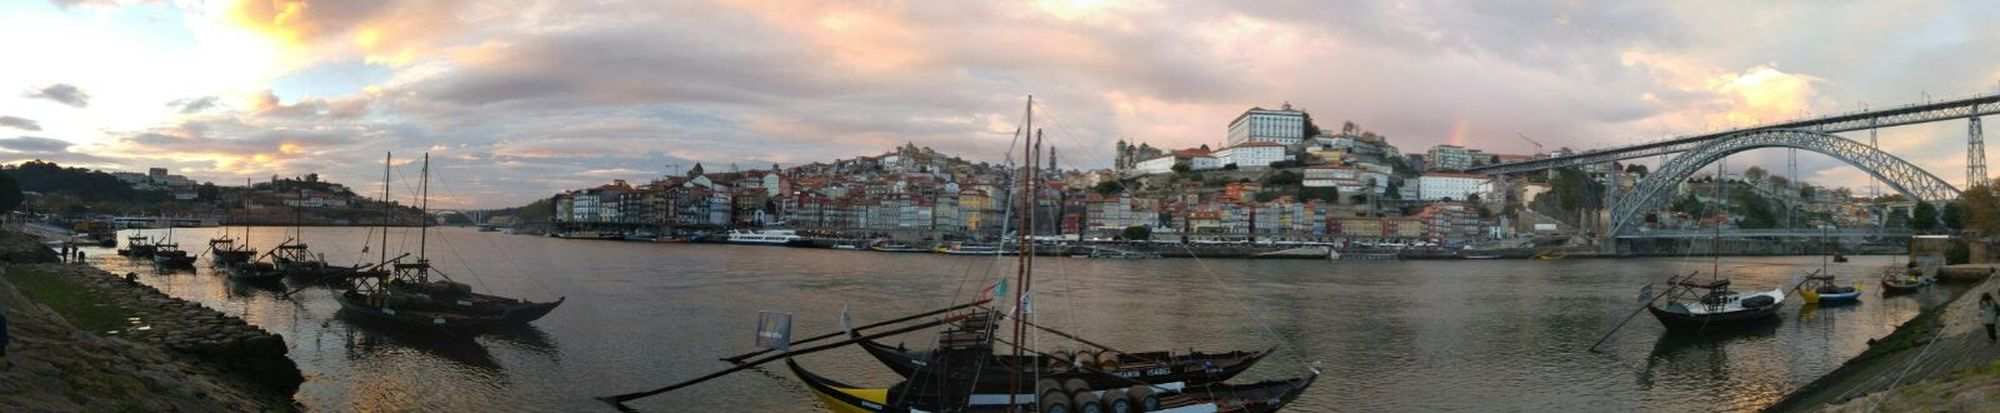 Perspectives On Nature Porto Portugal 🇵🇹 City Architecture Nature Water Panoramic Day Travel Woda Chmury Morze 🌞🌊 Sun ☀ Zwiedzanie People Sea⛵ Port EyeEm Sweets Horizon Over Water Water Blue AI Now EyeEmNewHere EyeEm Ready